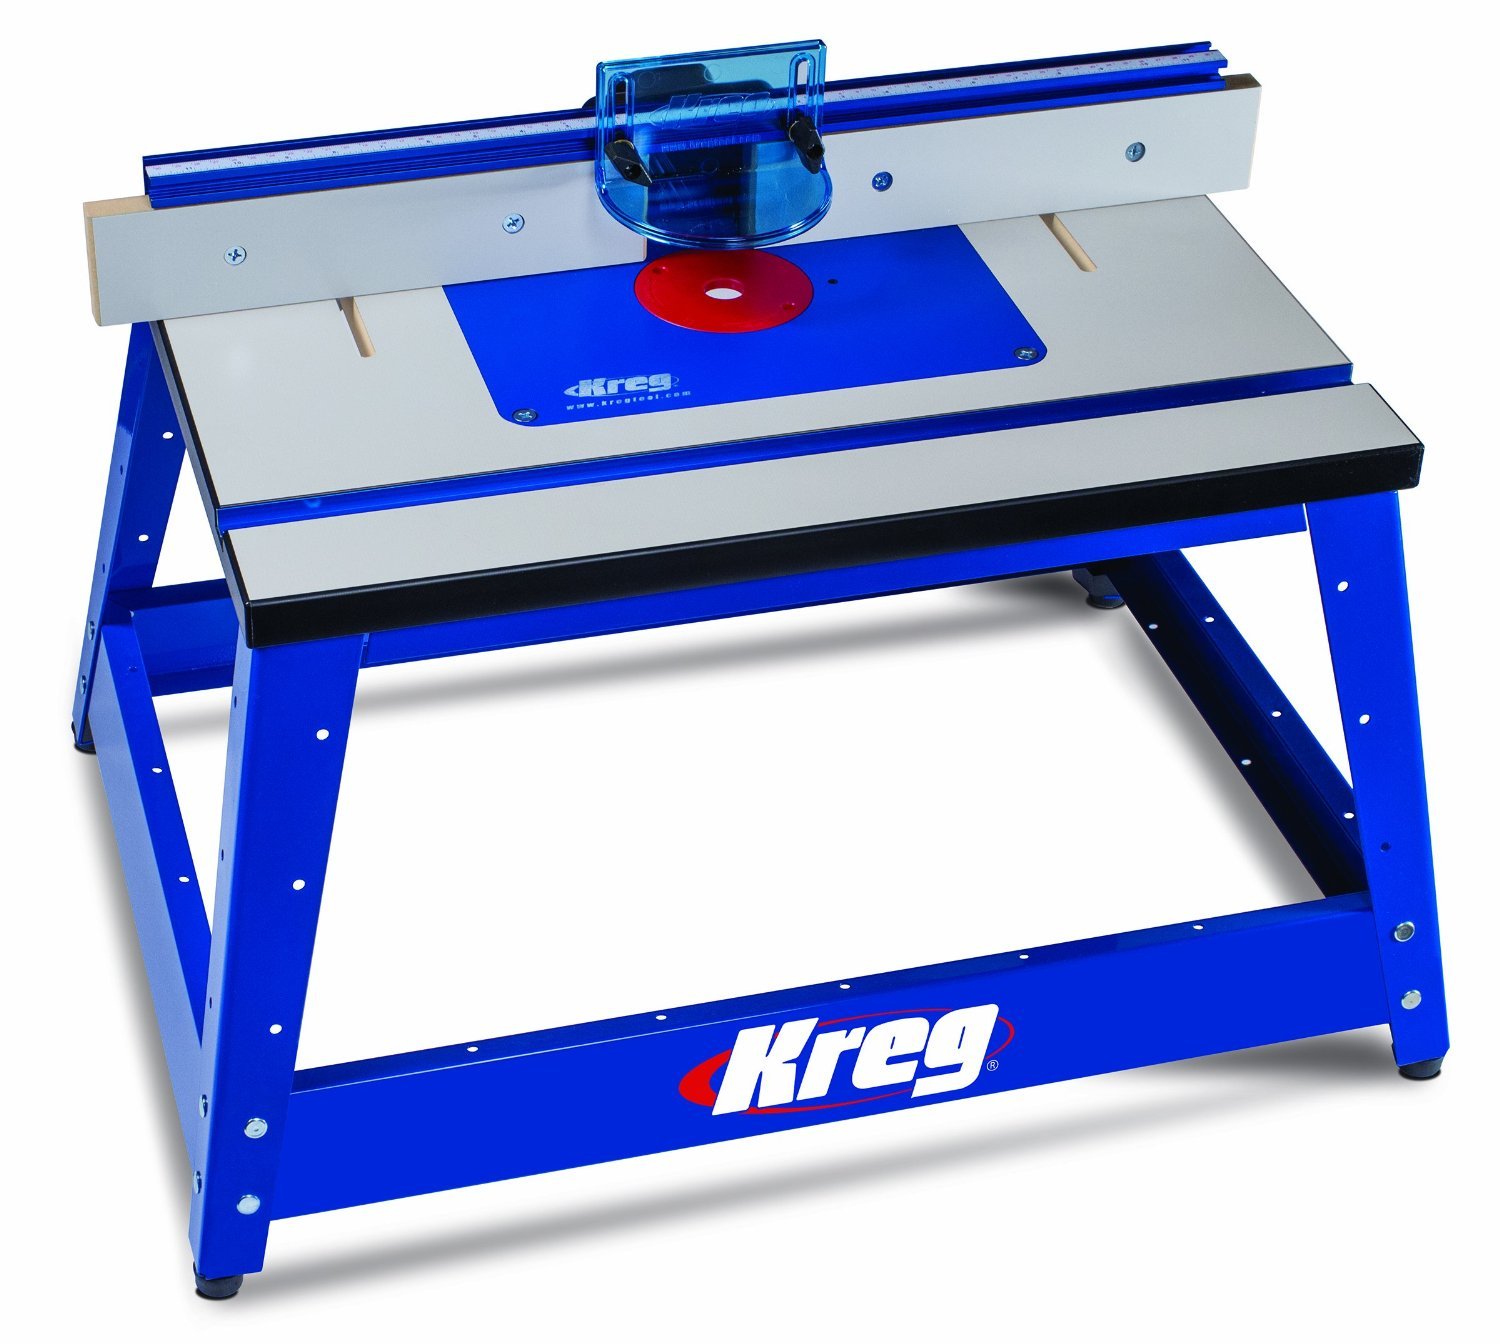 Kreg Prs2100 Bench Top Router Table Review 7routertables